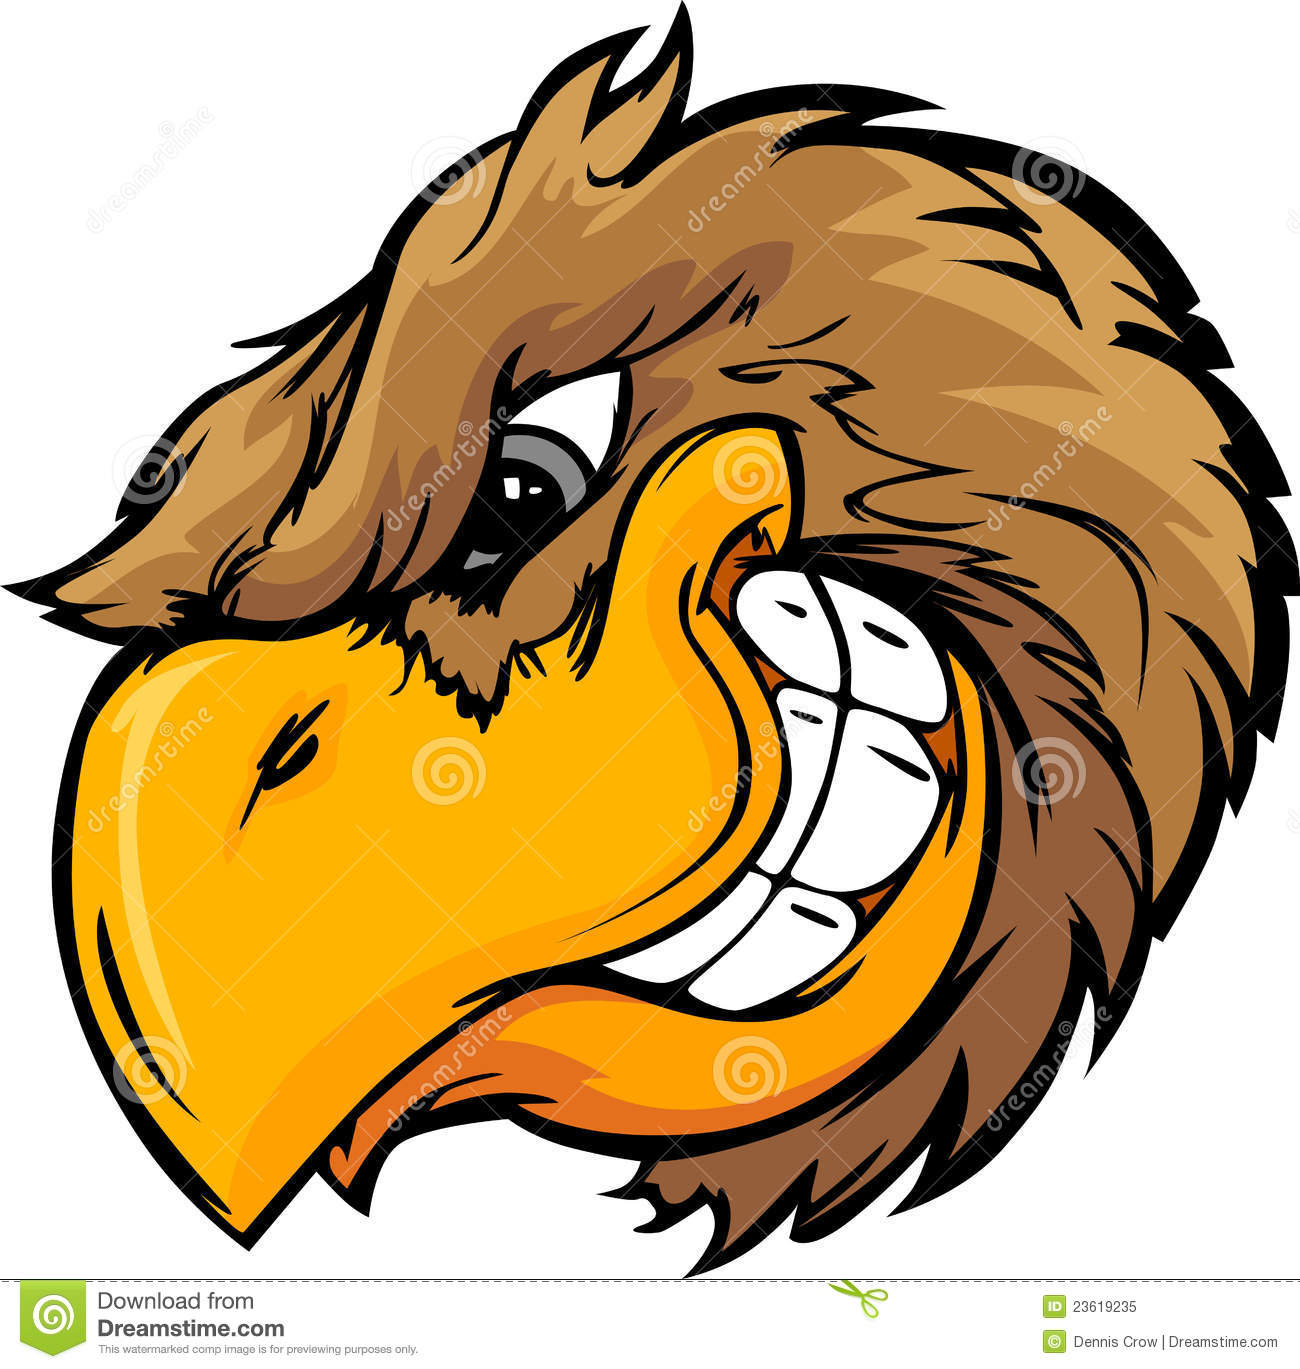 Bird Head Cartoon Illustration Royalty Free Stock Photo - Image ... Eagle Silhouette Vector